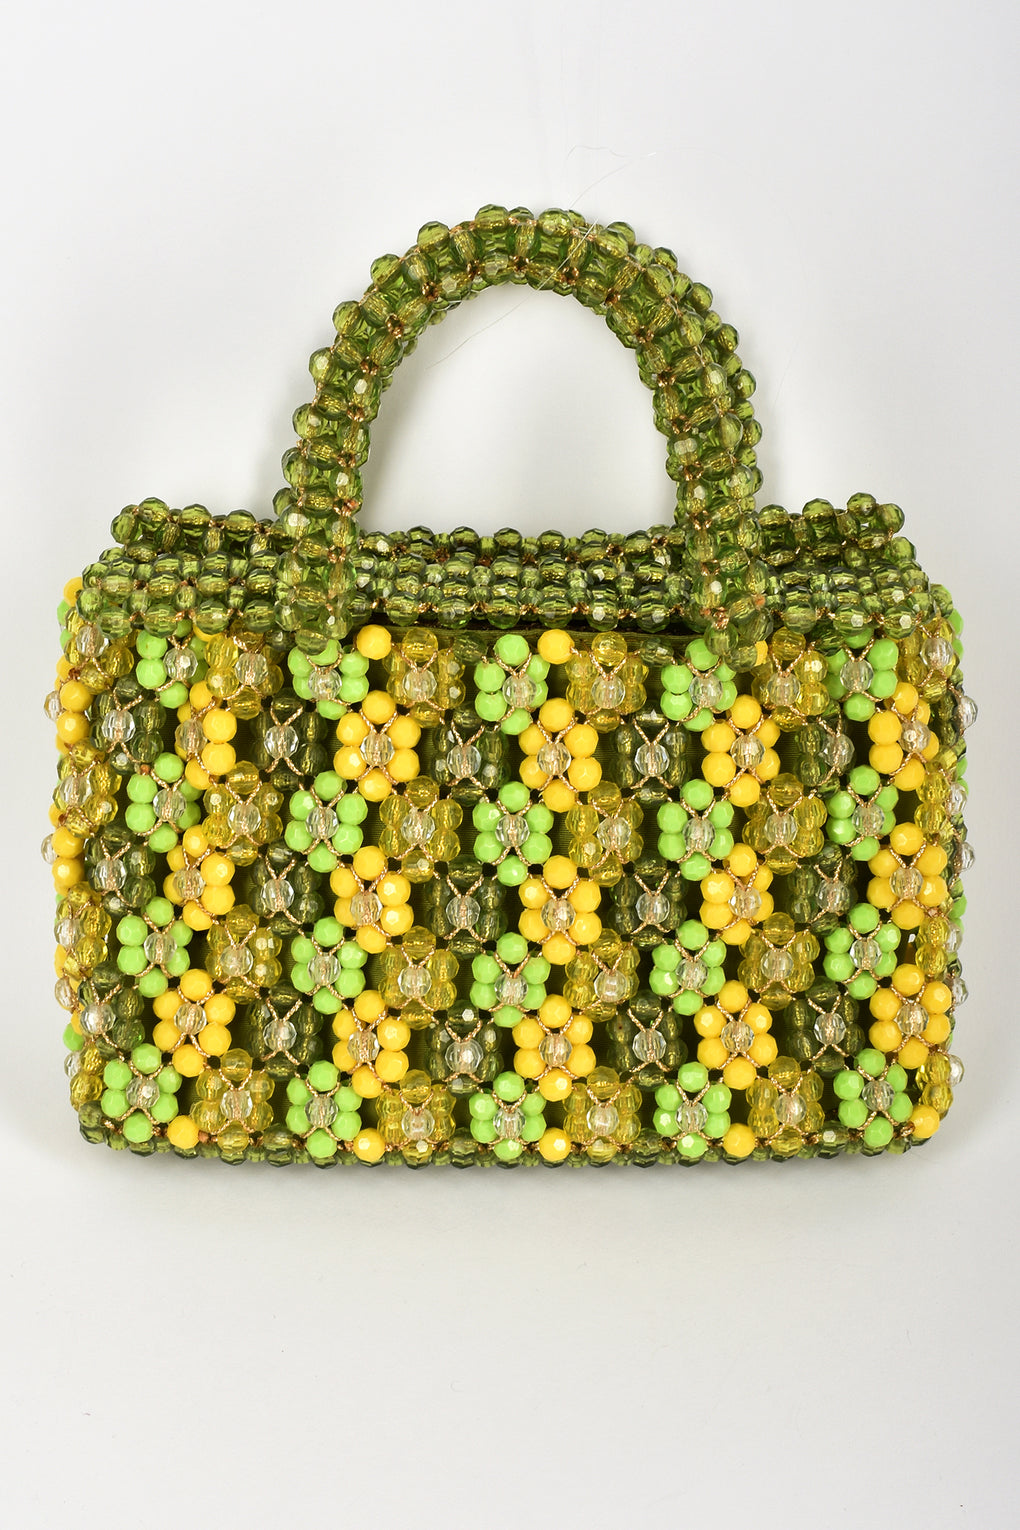 SAKS FIFTH AVENUE 60s beaded handbag